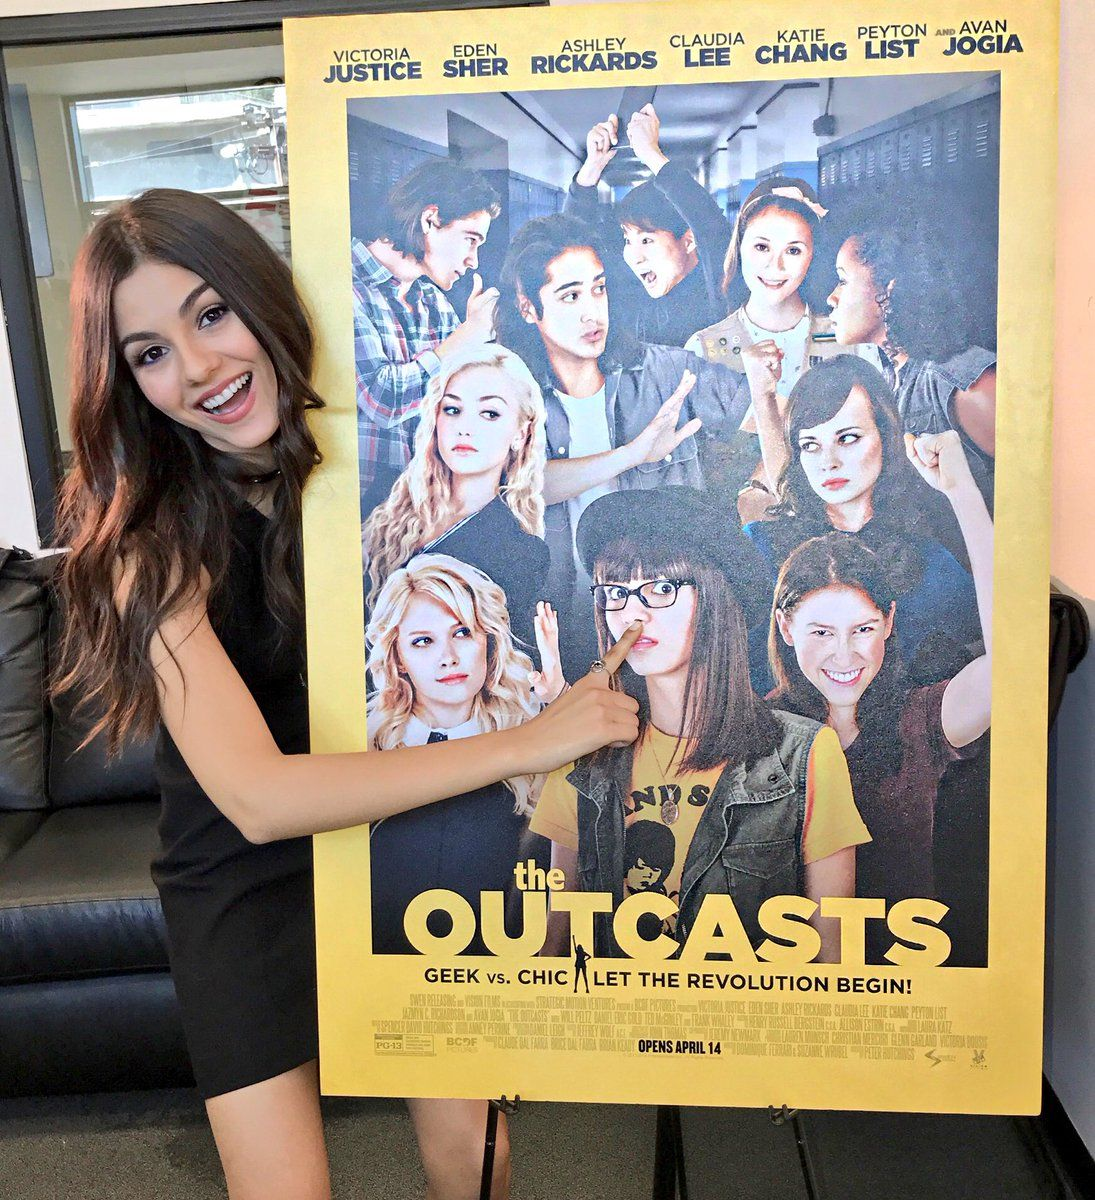 Victoria Justice Verified Account Victoriajustice 21h21 Hours Ago More Getting Ready For The Premiere Of Outcastsmovie Ton Victoria Justice Victoria Justice